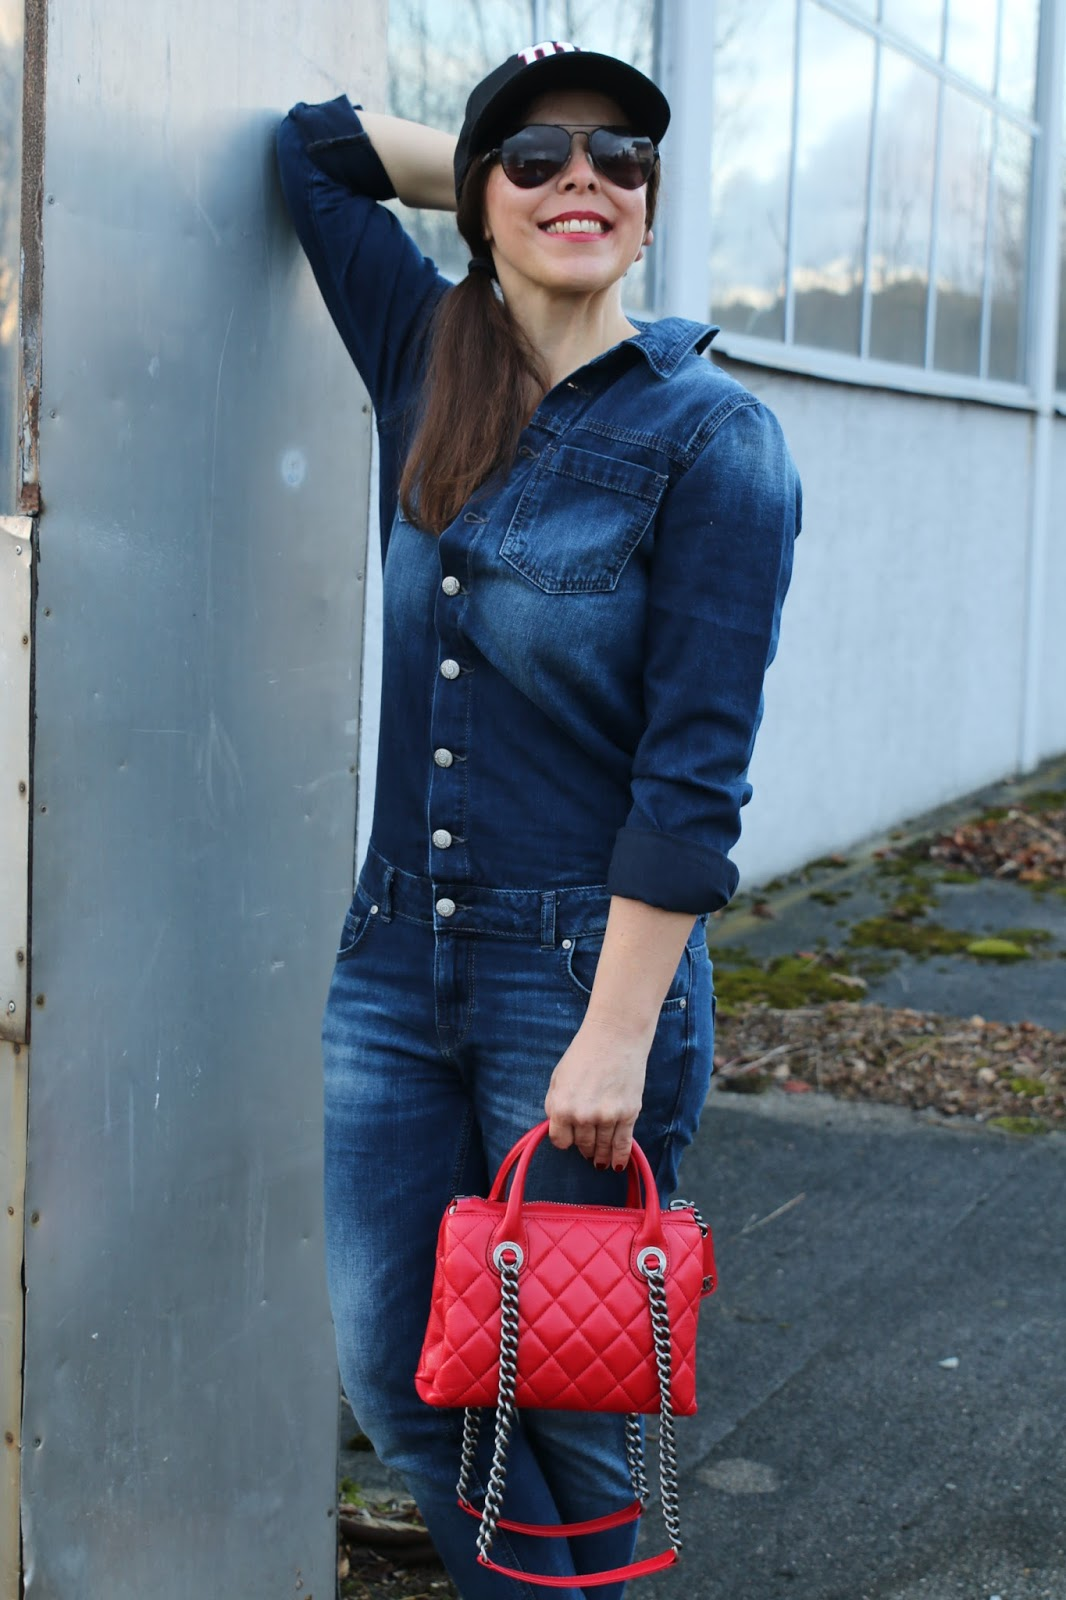 Outfit denim overall, pilot glasses,